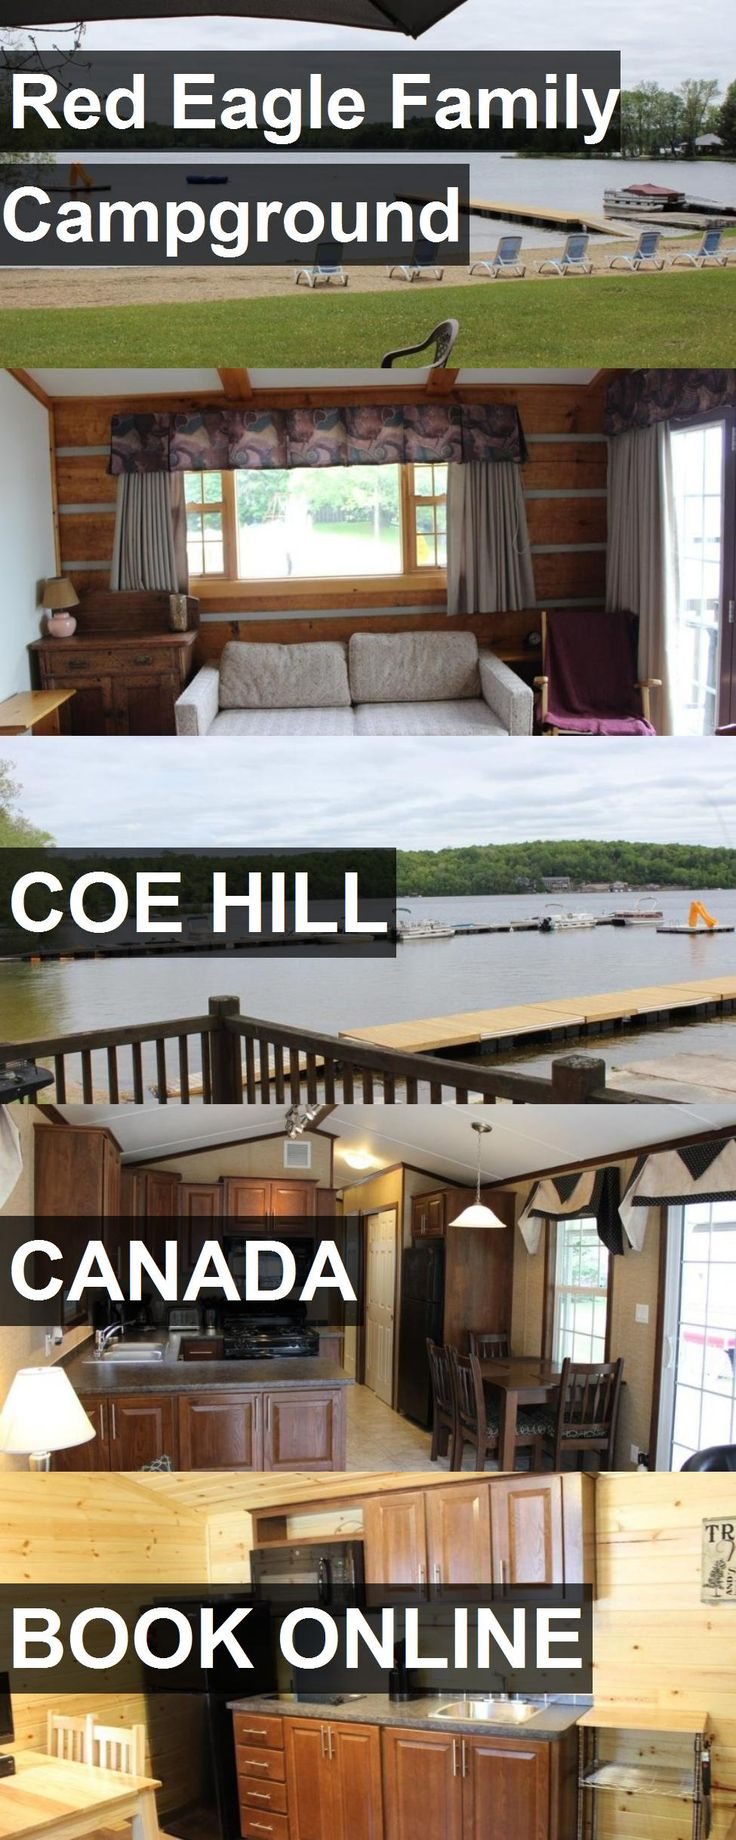 Hotel Red Eagle Family Campground in Coe Hill, Canada. For more information, photos, reviews and best prices please follow the link. #Canada #CoeHill #RedEagleFamilyCampground #hotel #travel #vacation